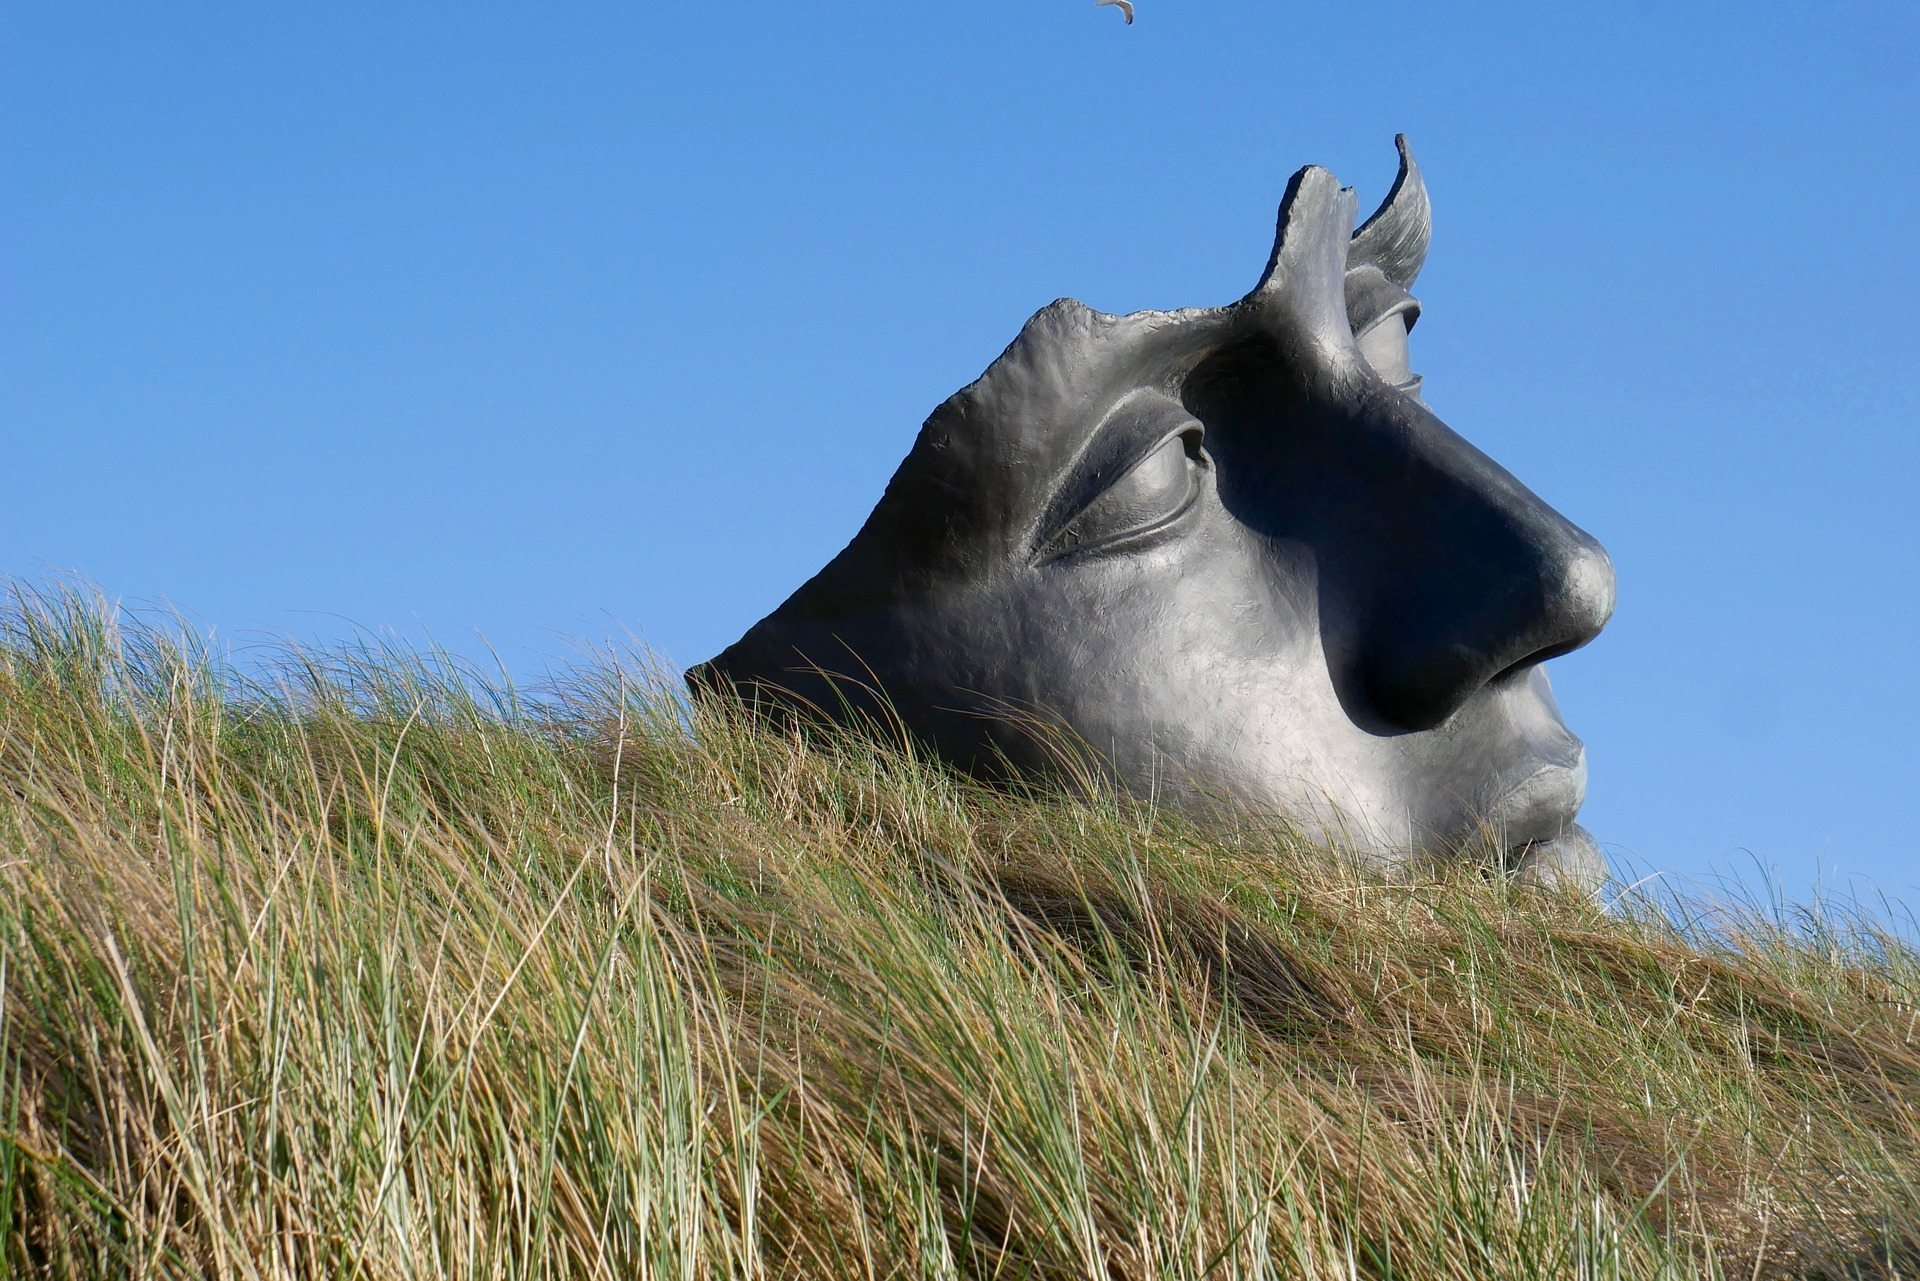 Image: Statue of face on a hill